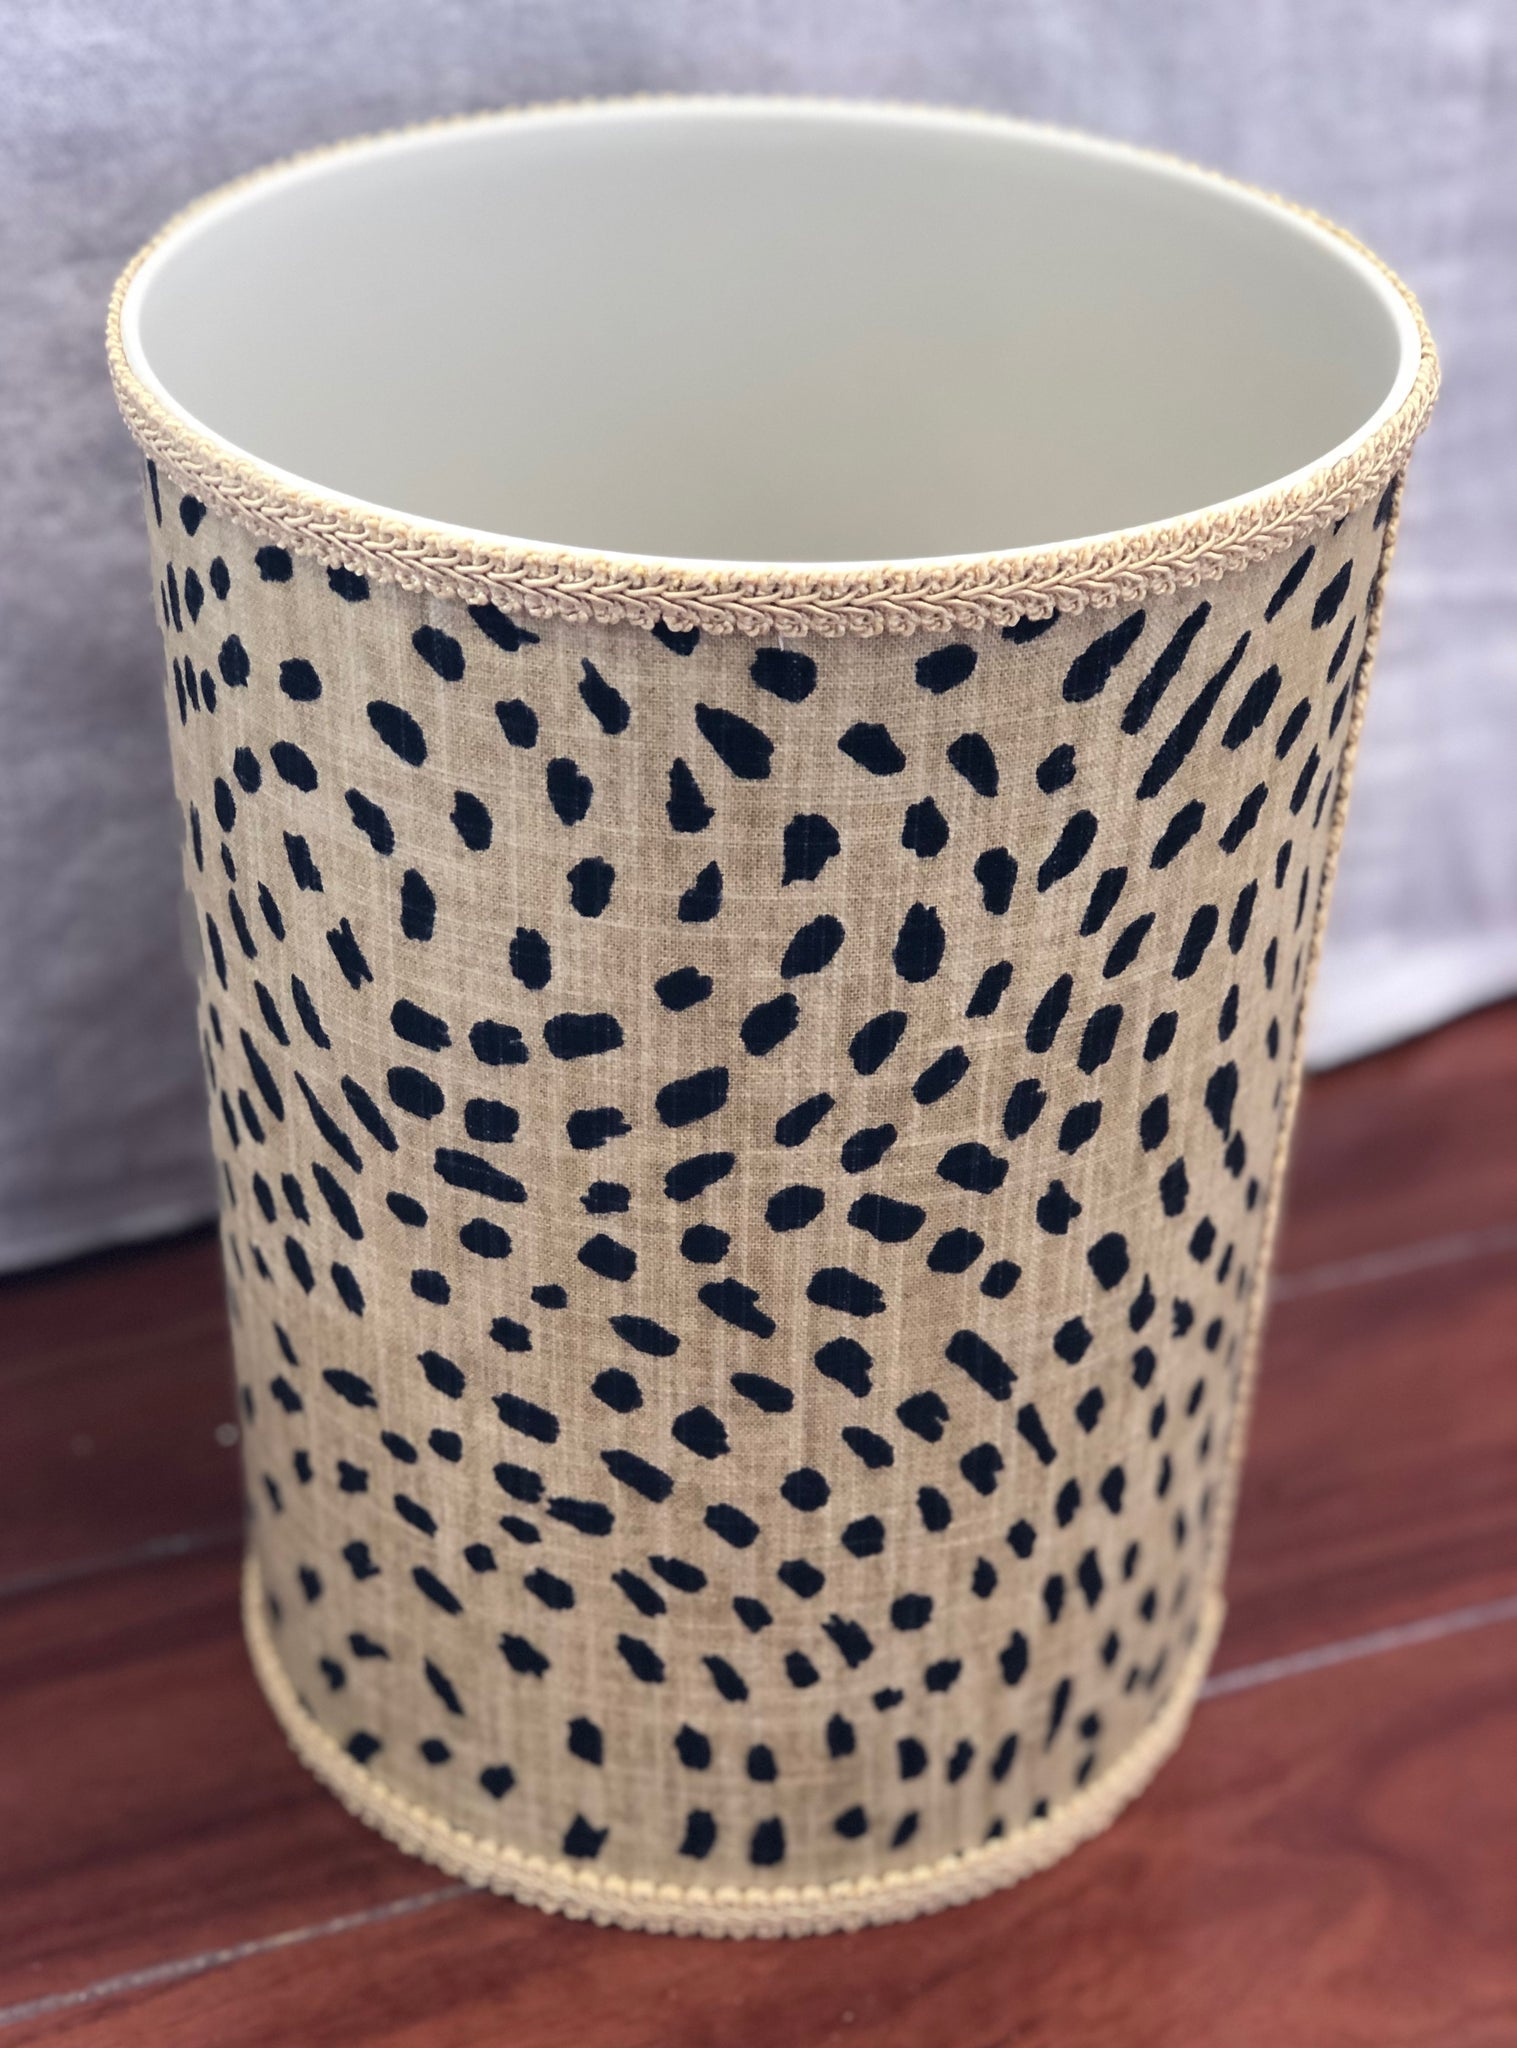 Jan Sevadjian Leopard Upholstered Waste Basket